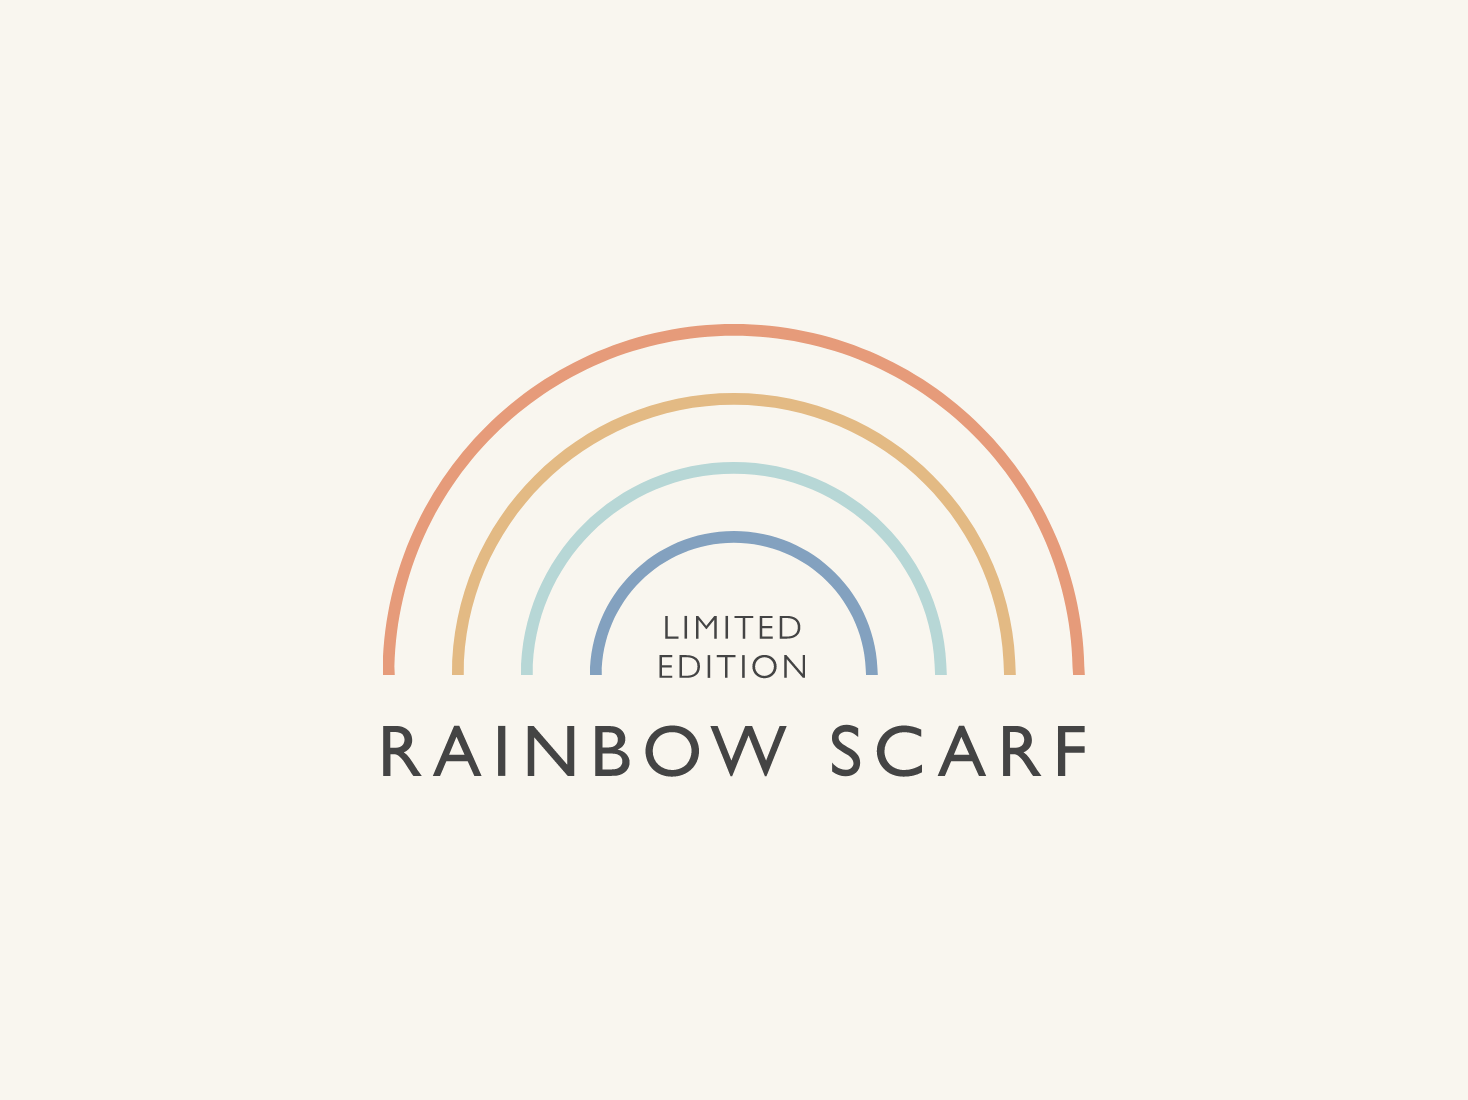 Limited Edition Rainbow Scarf